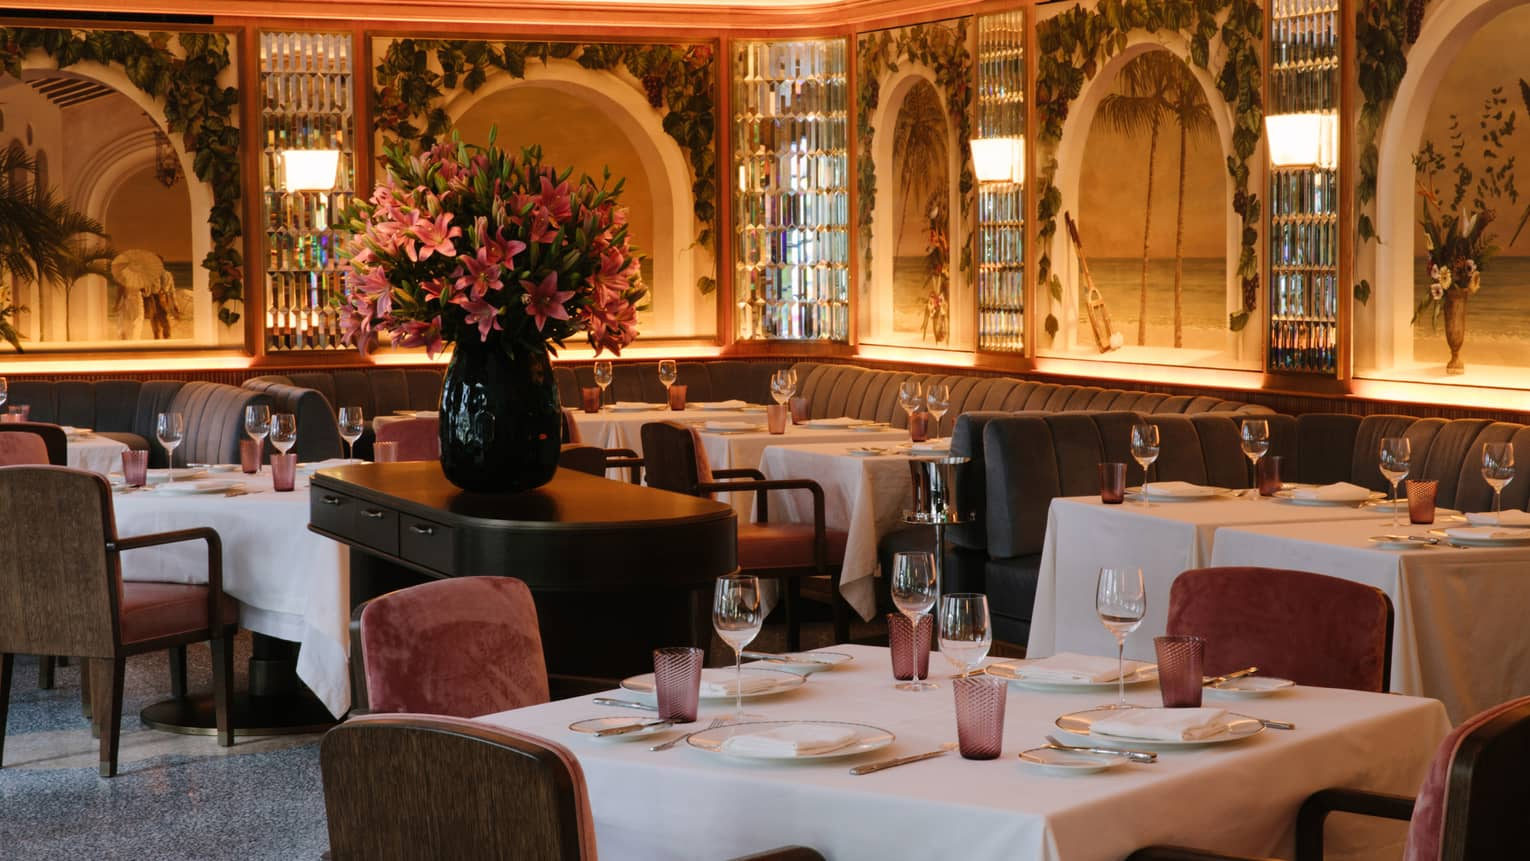 An empty dinning room of plush velvet chairs and tropical inspired murals. A large bouquet of pink hibiscus flowers sits in the middle